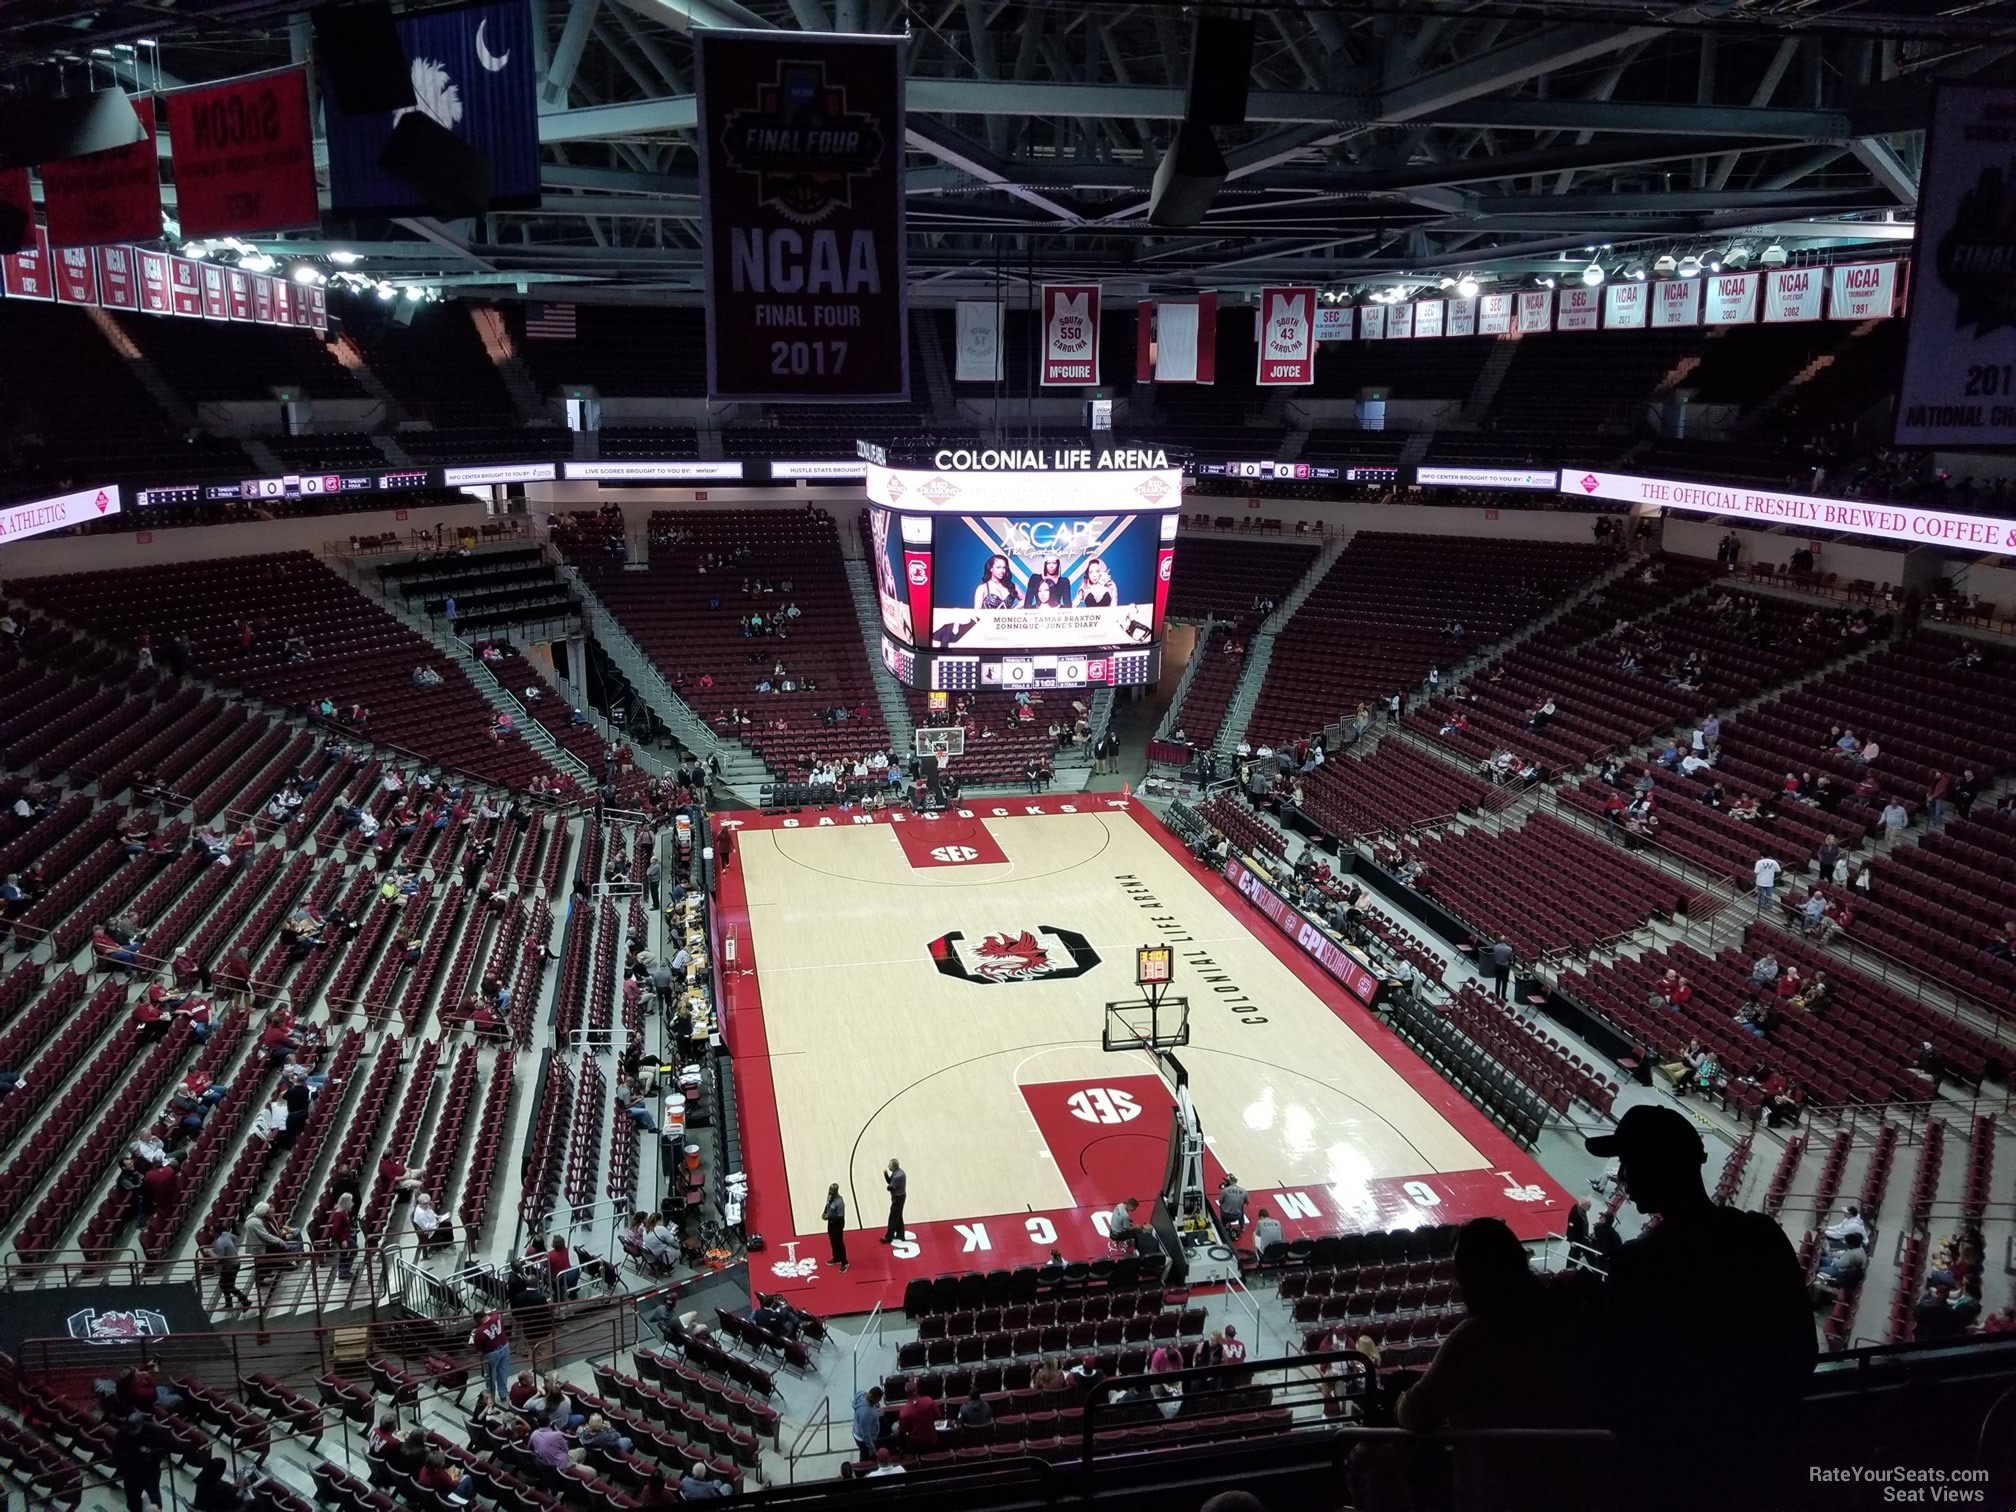 Seat View for Colonial Life Arena Section 202, Row 7